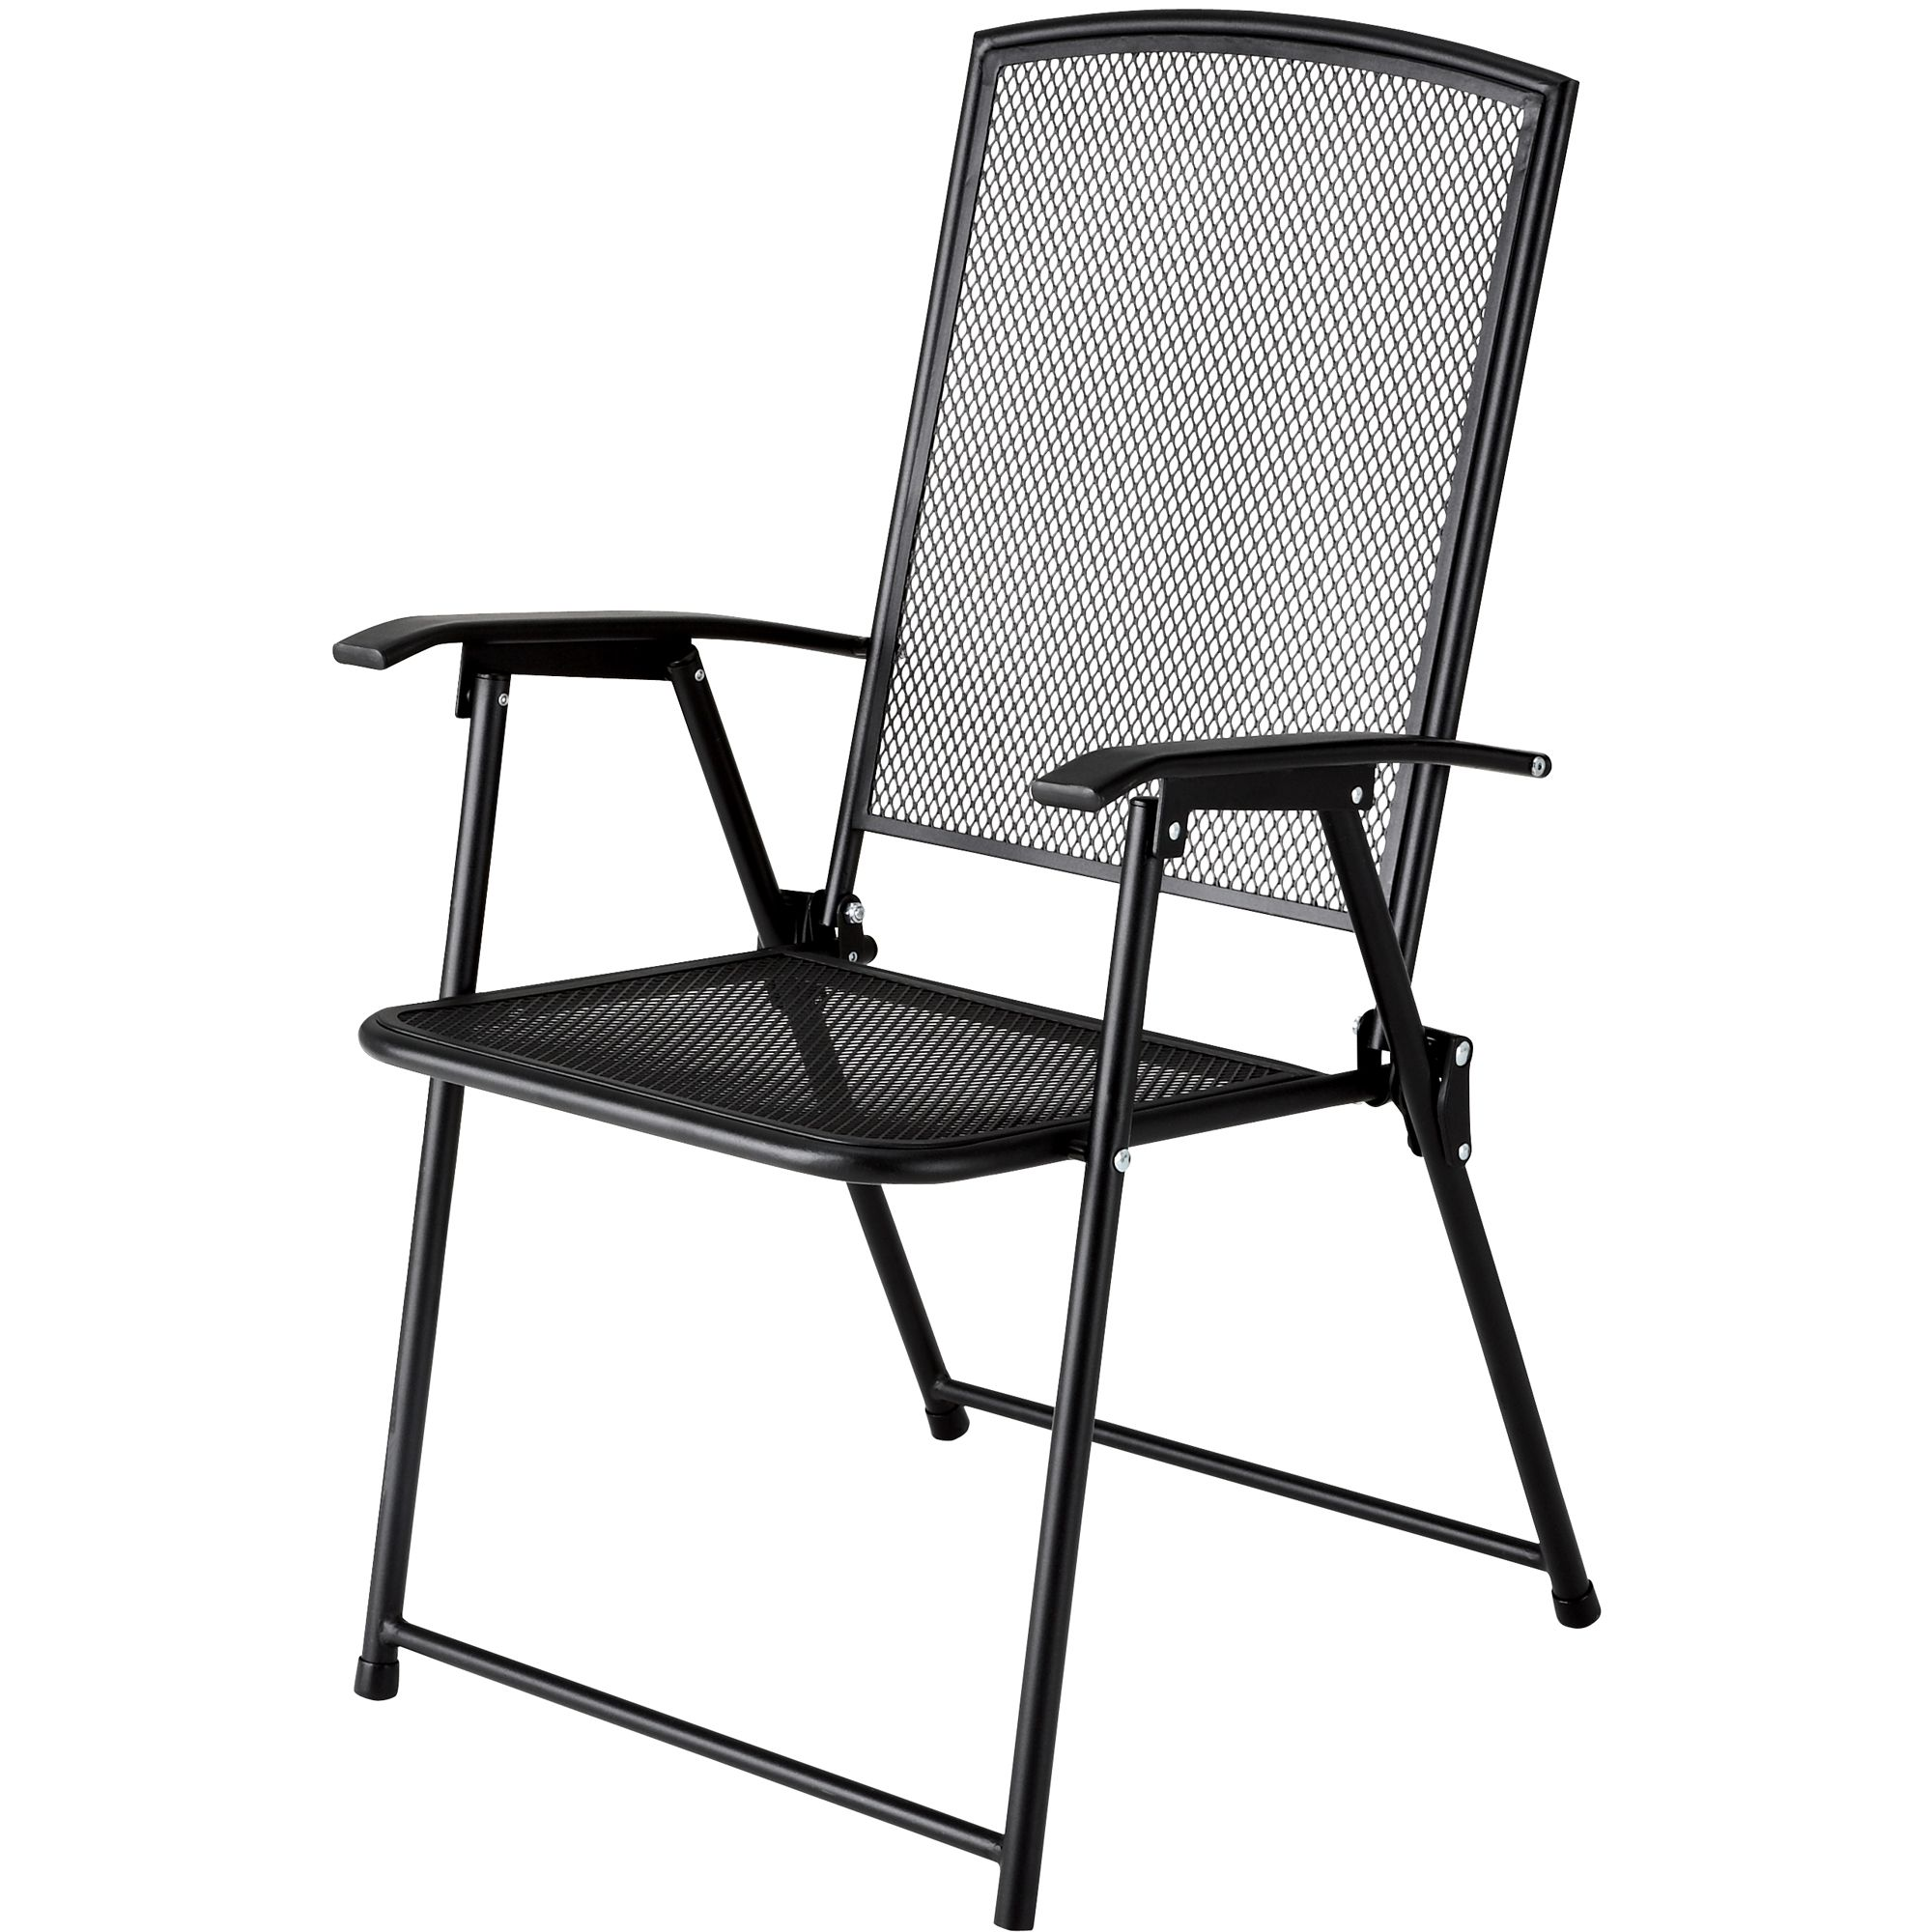 Black Folding Chairs Garden Oasis Wrought Iron Folding Chair Sears